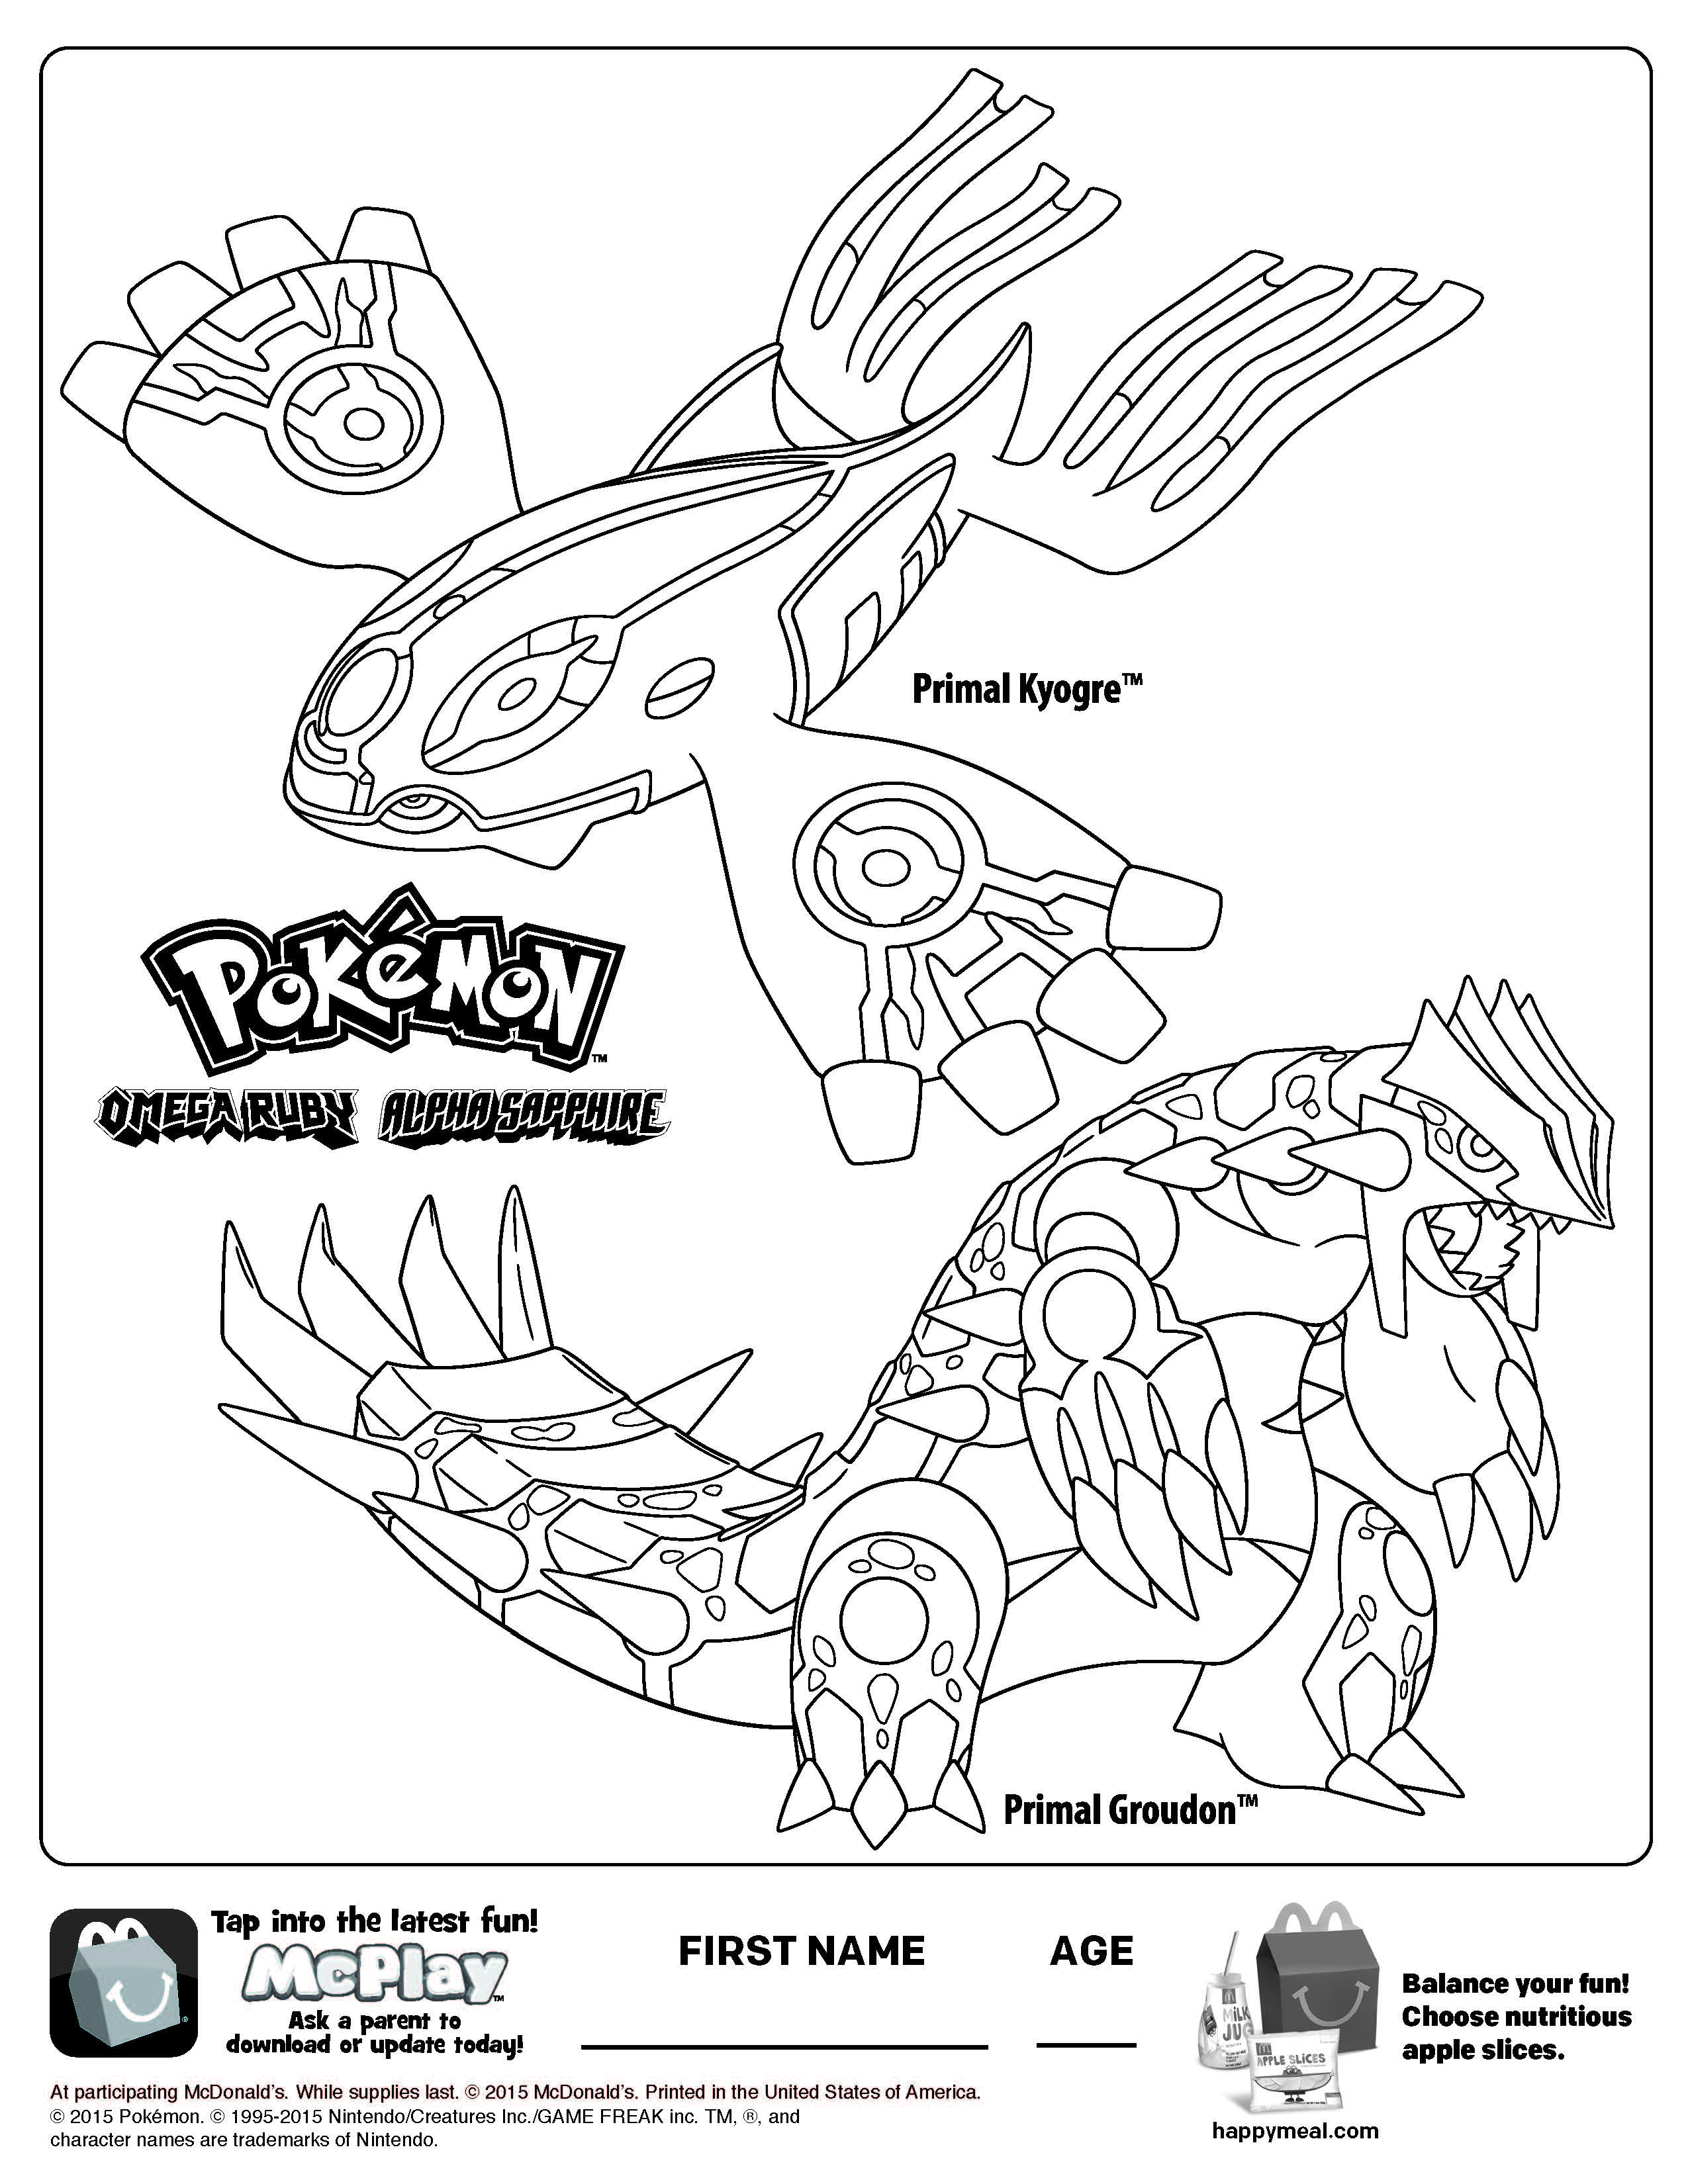 Free Mcdonalds Happy Meal Pokemon Printable Coloring Page Pokemon Coloring Pokemon Coloring Sheets Coloring Pages